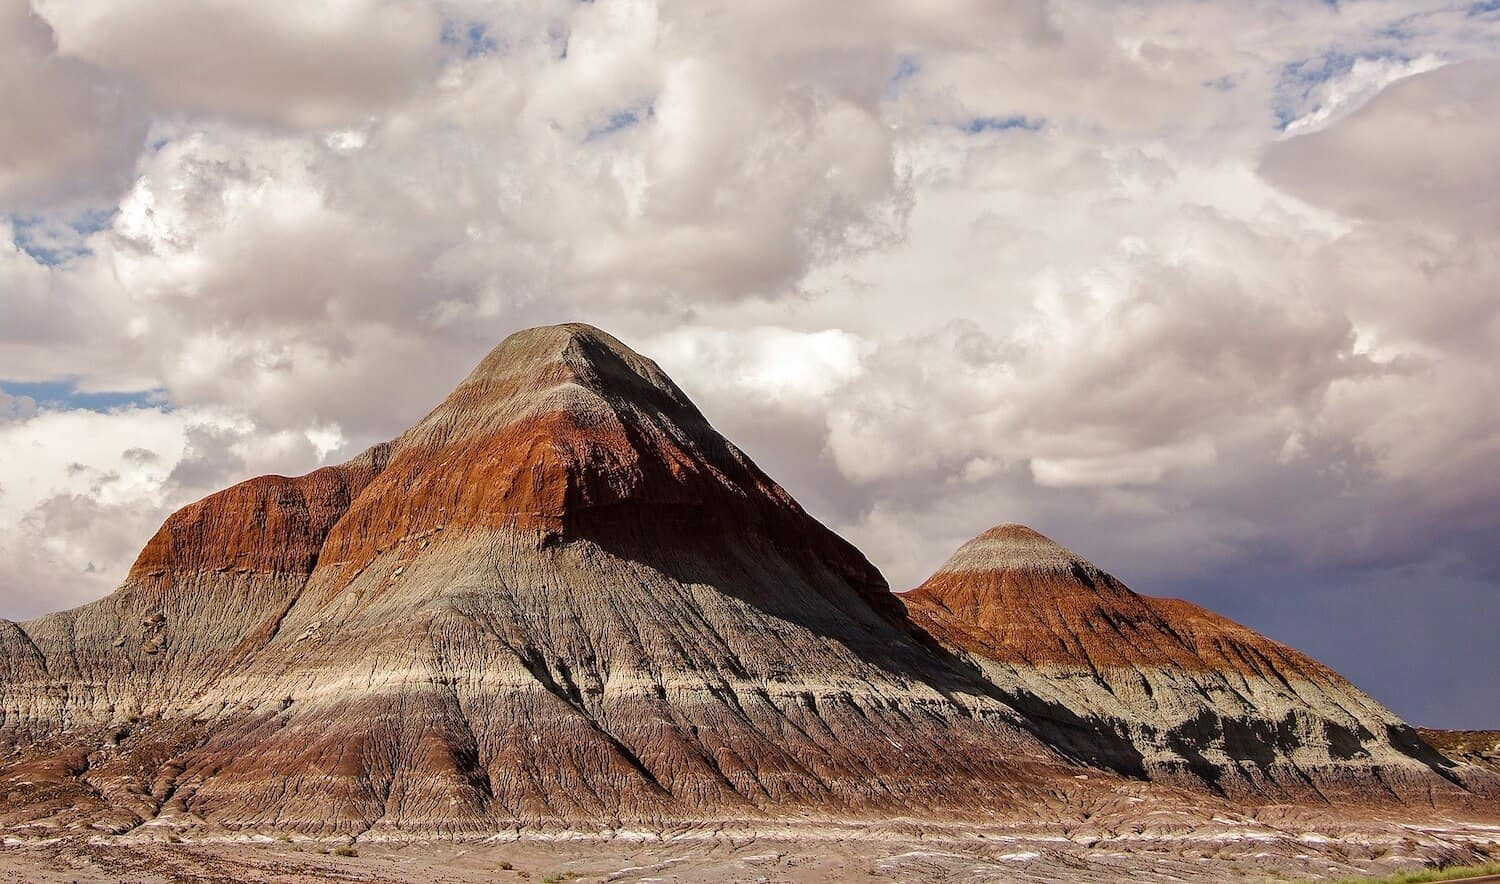 National Parks in Arizona - Petrified Forest